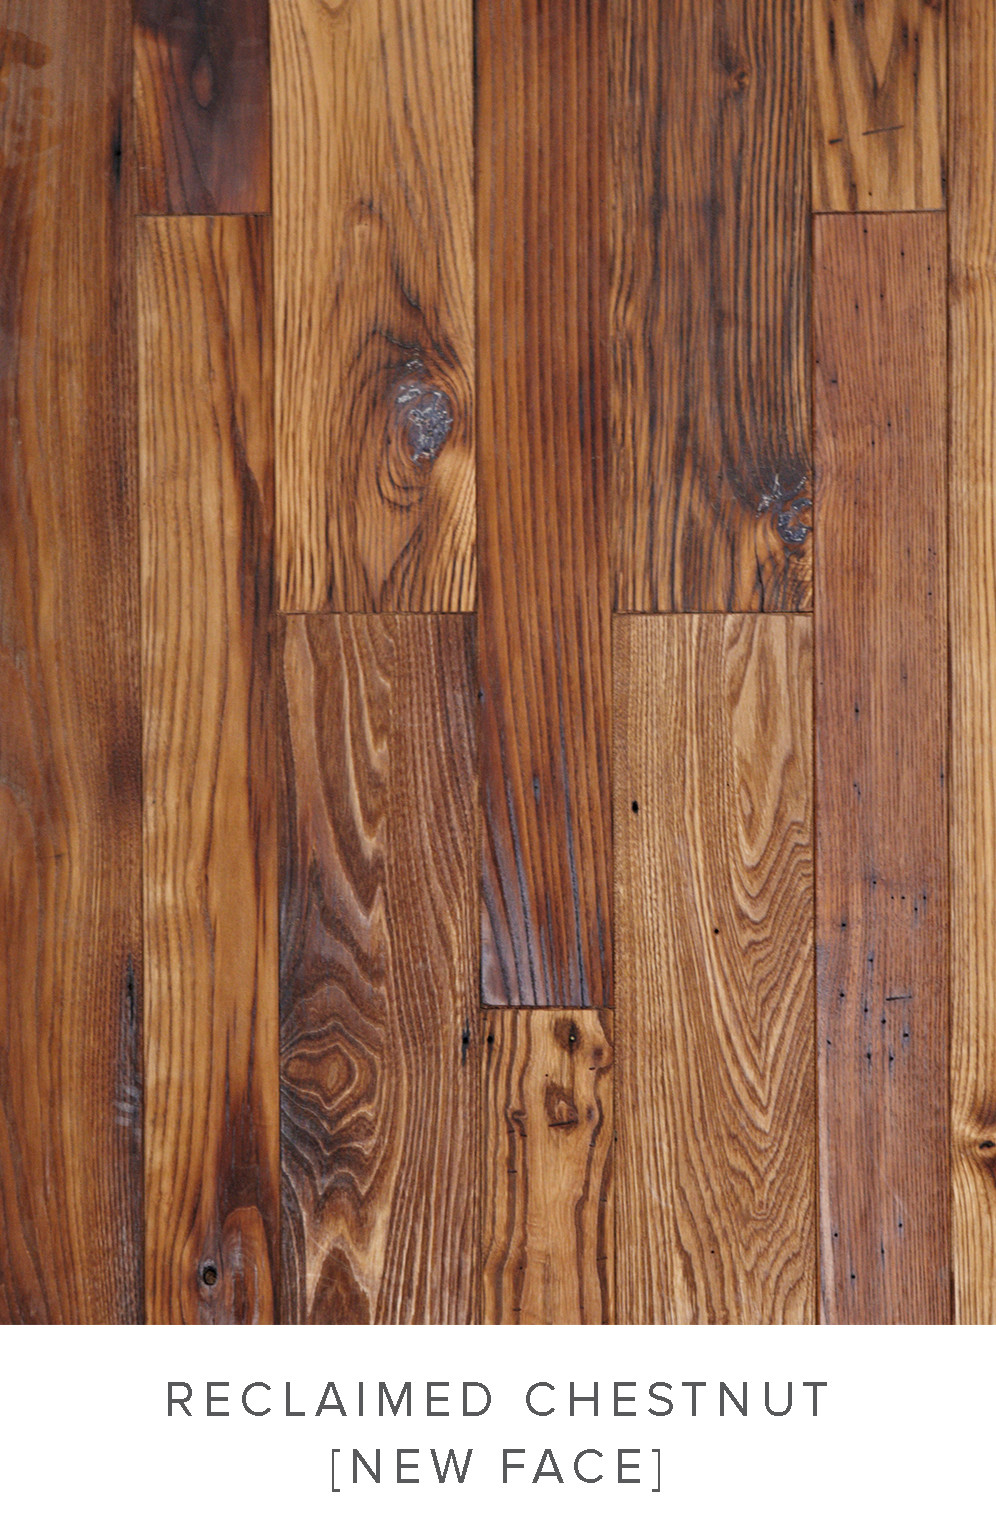 Images Of Red Oak Hardwood Floors Of Extensive Range Of Reclaimed Wood Flooring All Under One Roof at the within Reclaimed Wood Flooring